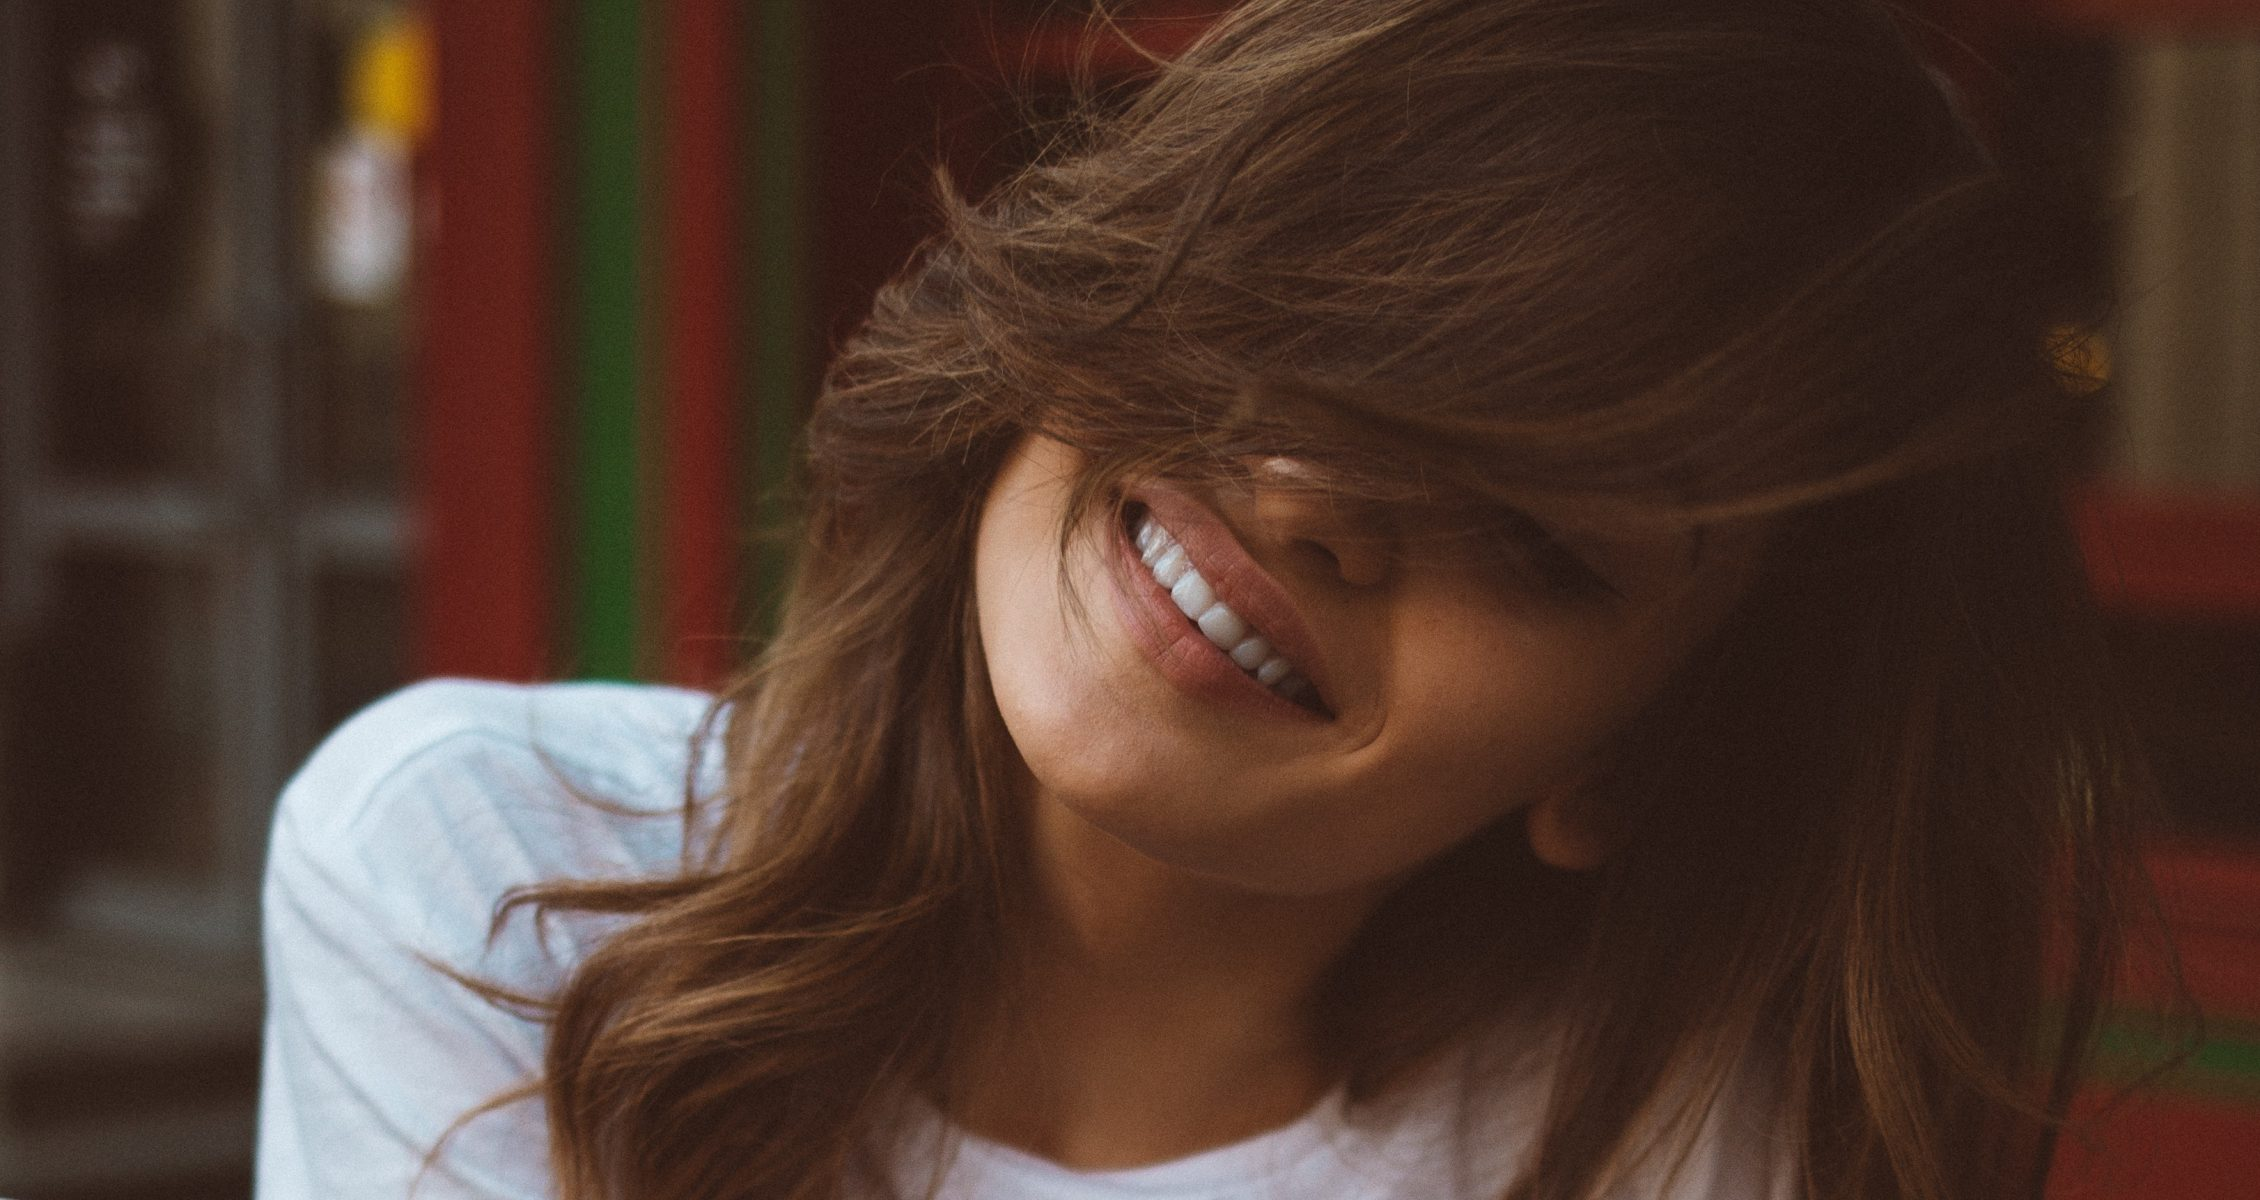 Woman with long bangs covering her face smiling